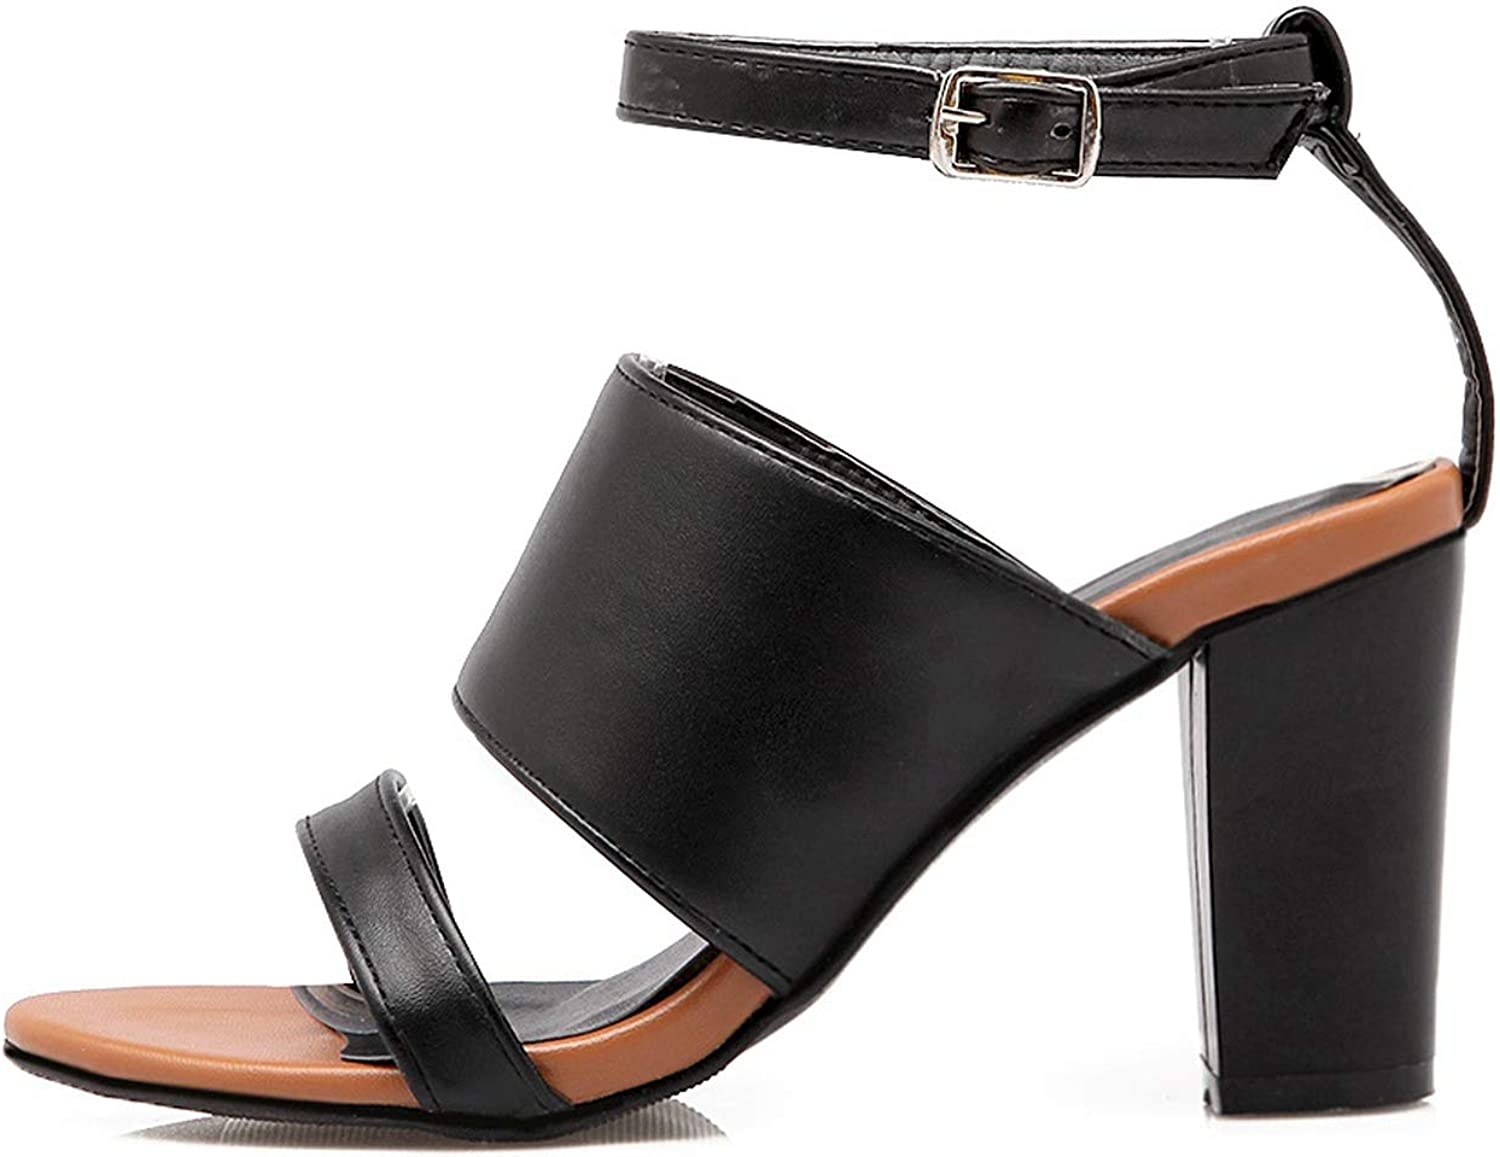 Zalin Summer Thick Heels Sandals Sexy Ankle Strap Buckle pu Leather Black White Party shoes